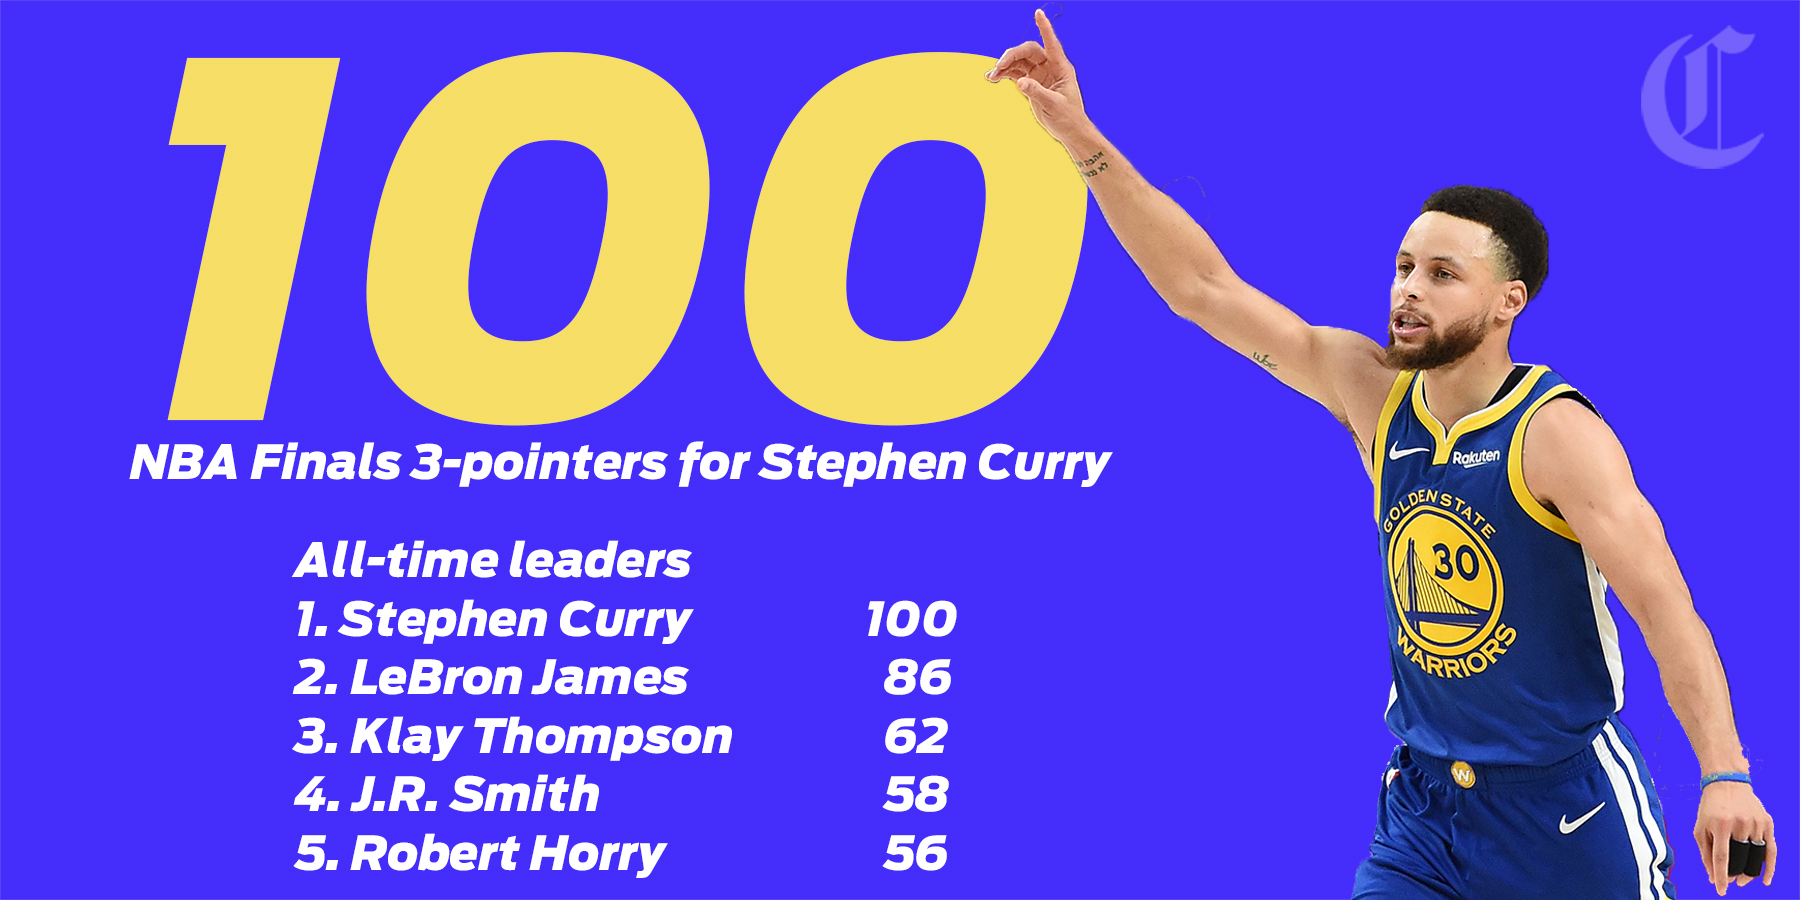 Warriors' Stephen Curry quickly shoots